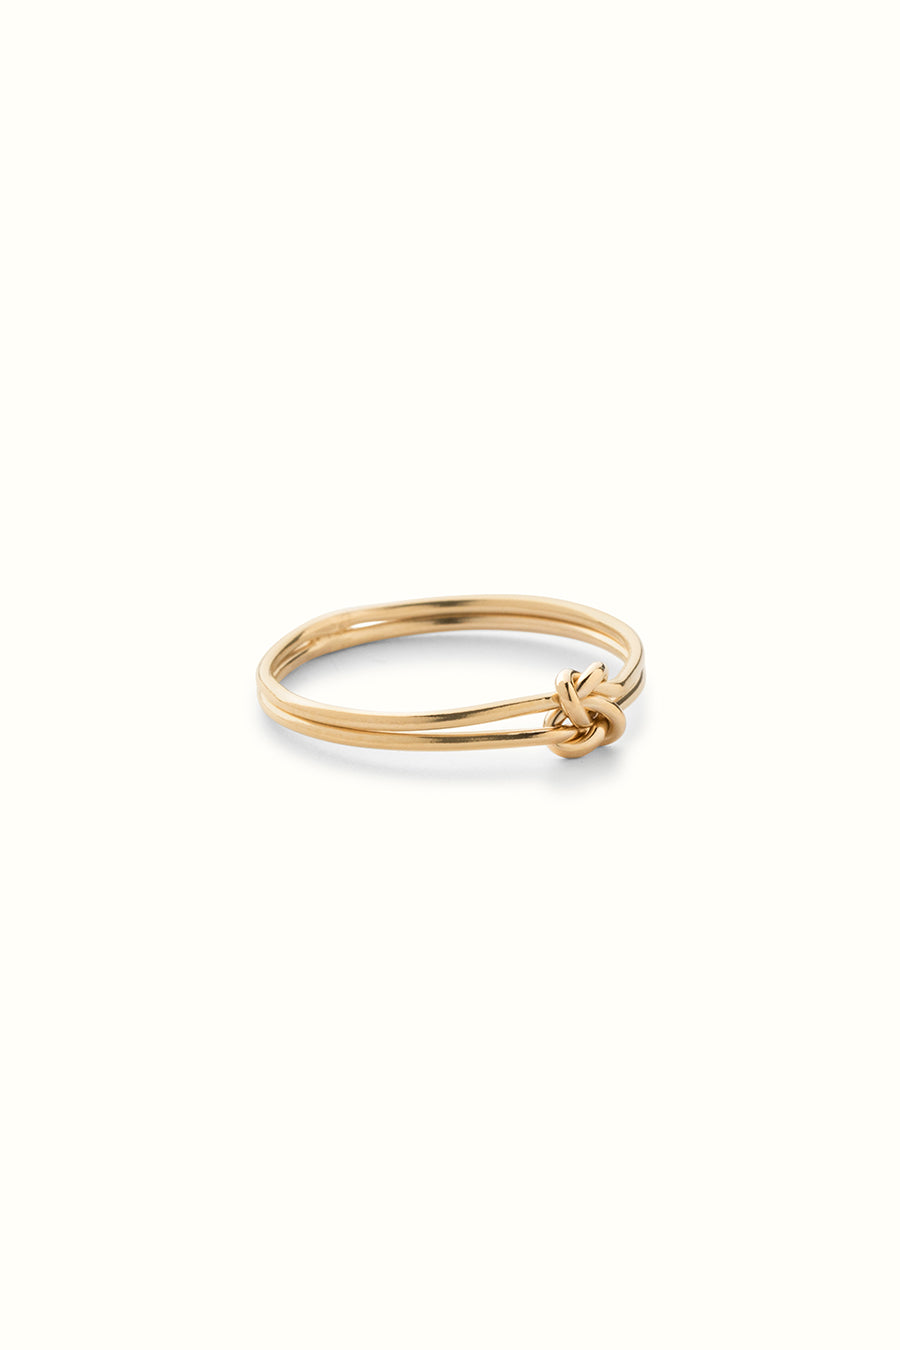 a gold filled love knot wire ring on a white background